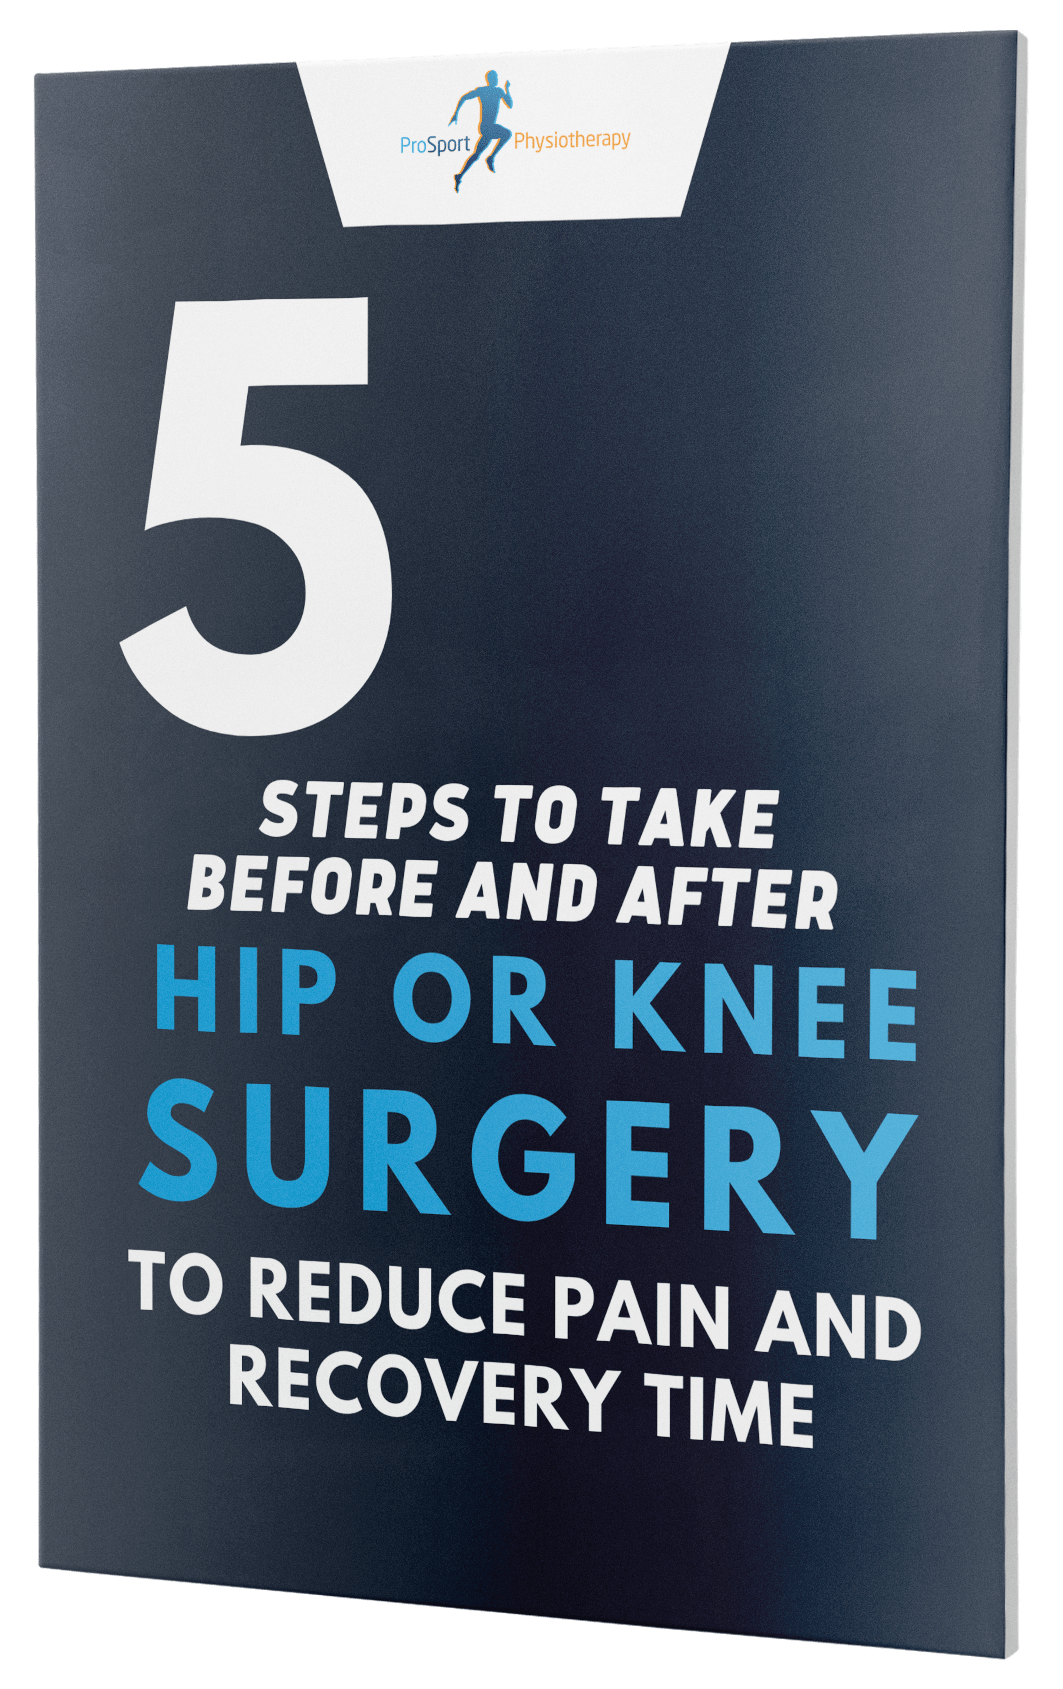 PDF Guide 5 steps to recovery after surgery Pro Sport Physiotherapy Huddersfield